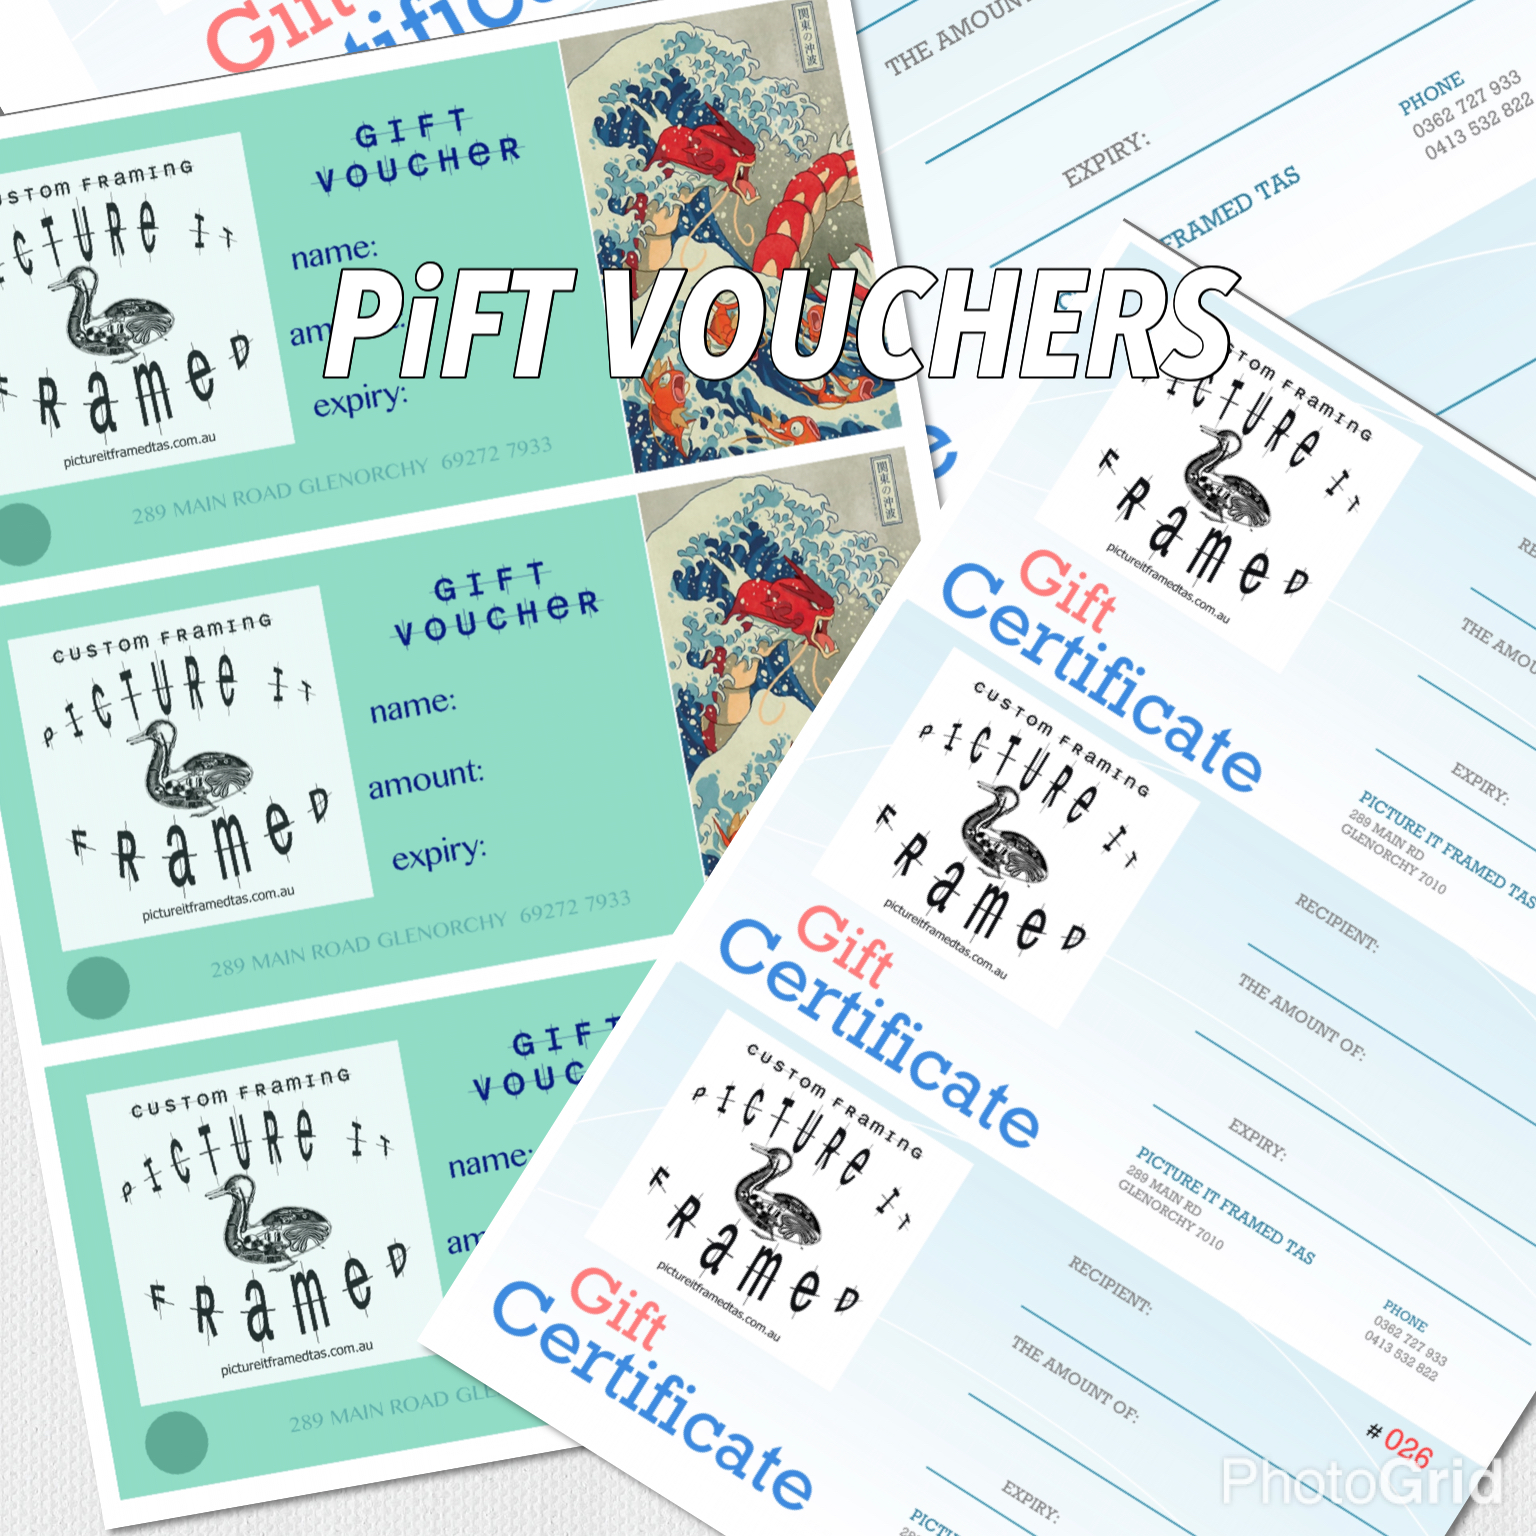 Yes, we have Gift Vouchers for your loved-ones.